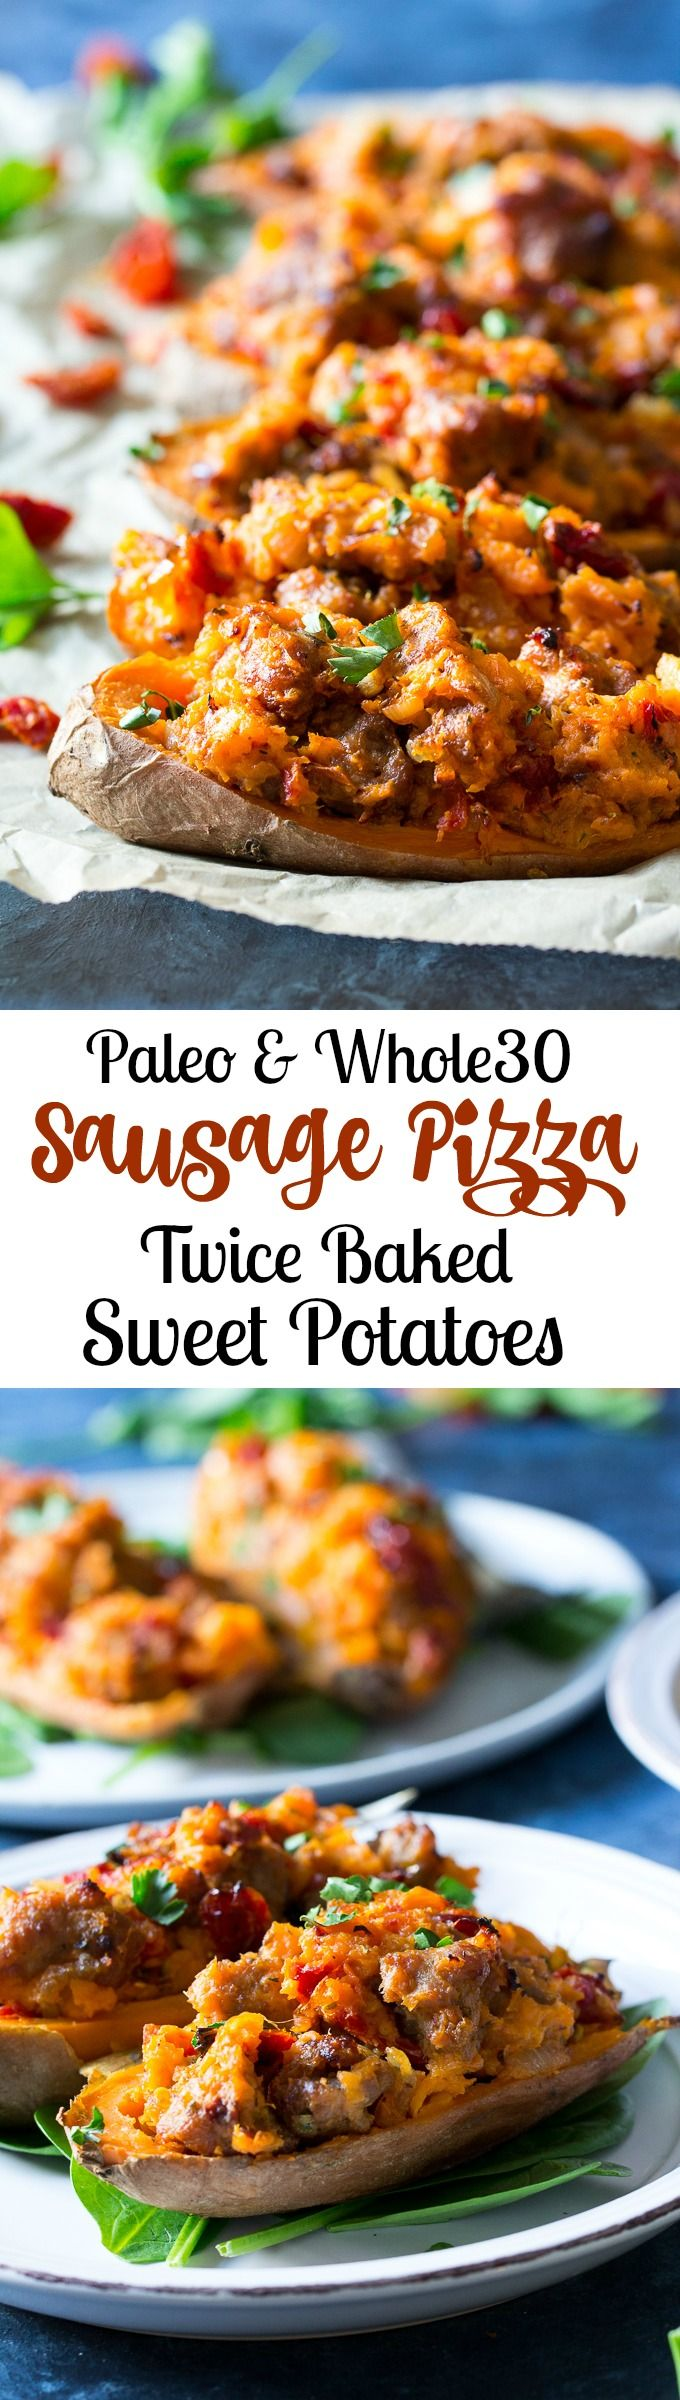 These are the ultimate Paleo and Whole30 Twice Baked Sweet Potatoes!  With an addicting filling that tastes just like sausage pizza, they're a great weeknight dinner (do the first baking ahead of time), healthy, filling, and kid friendly.